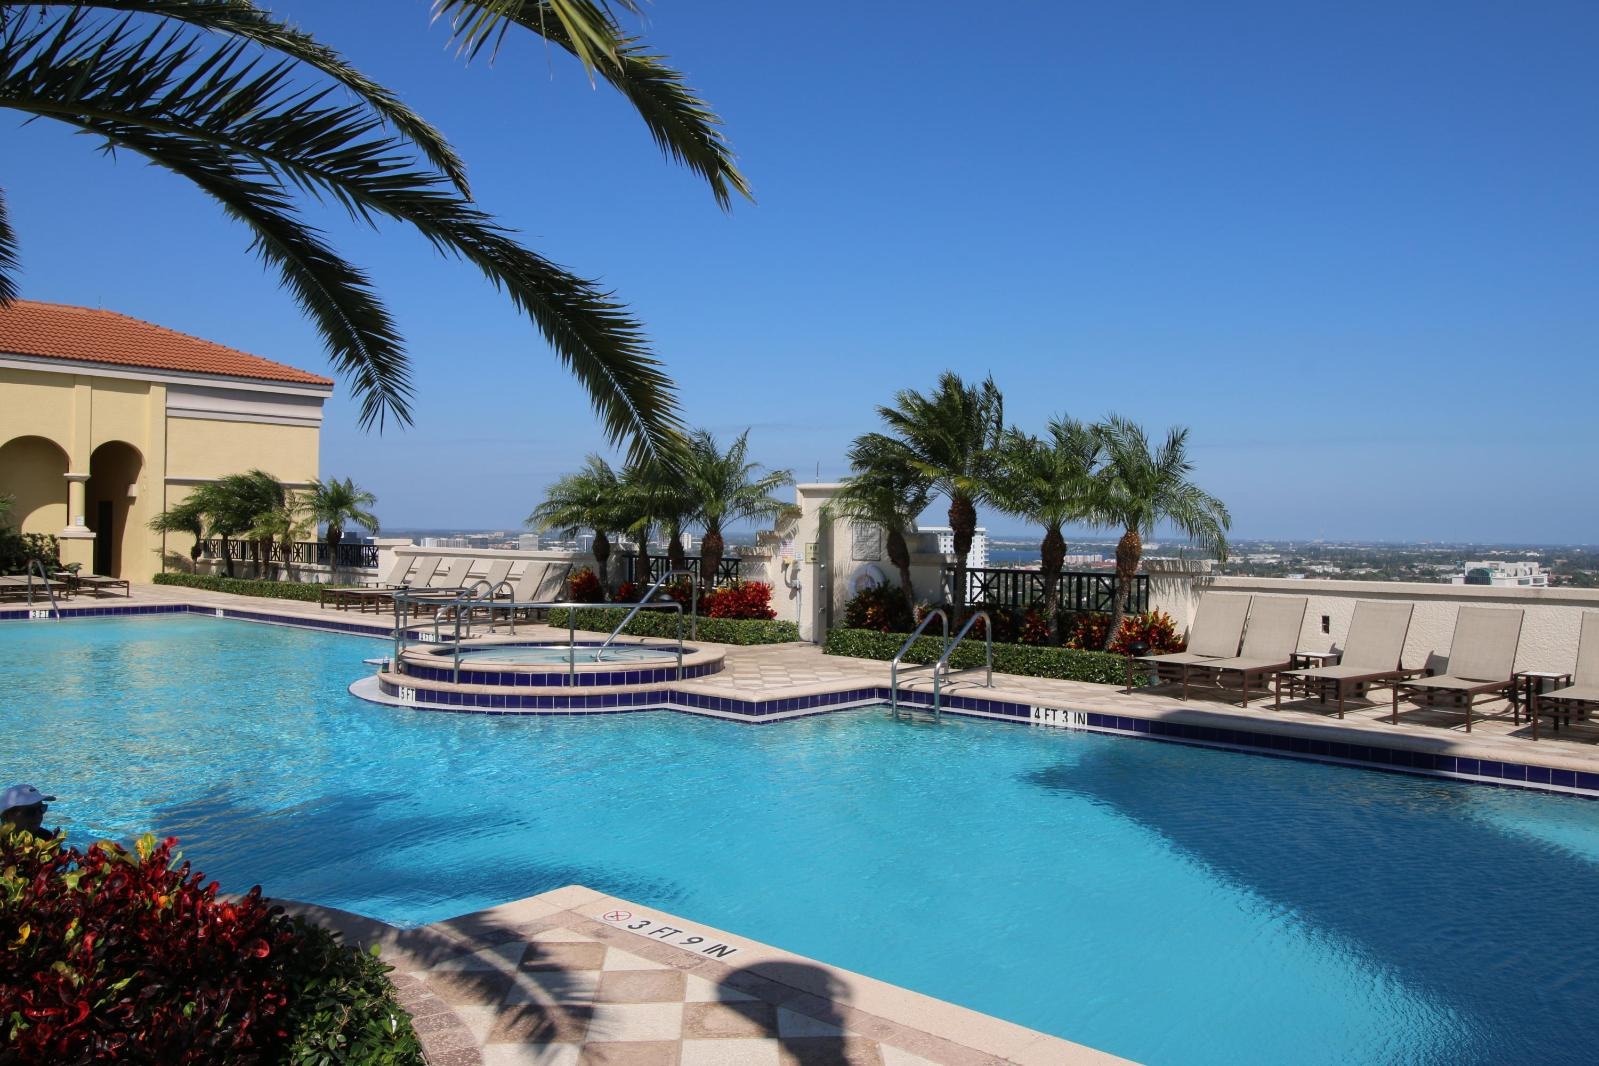 701 S Olive Ave Apt 812 812 West Palm Beach FL Coldwell Banker